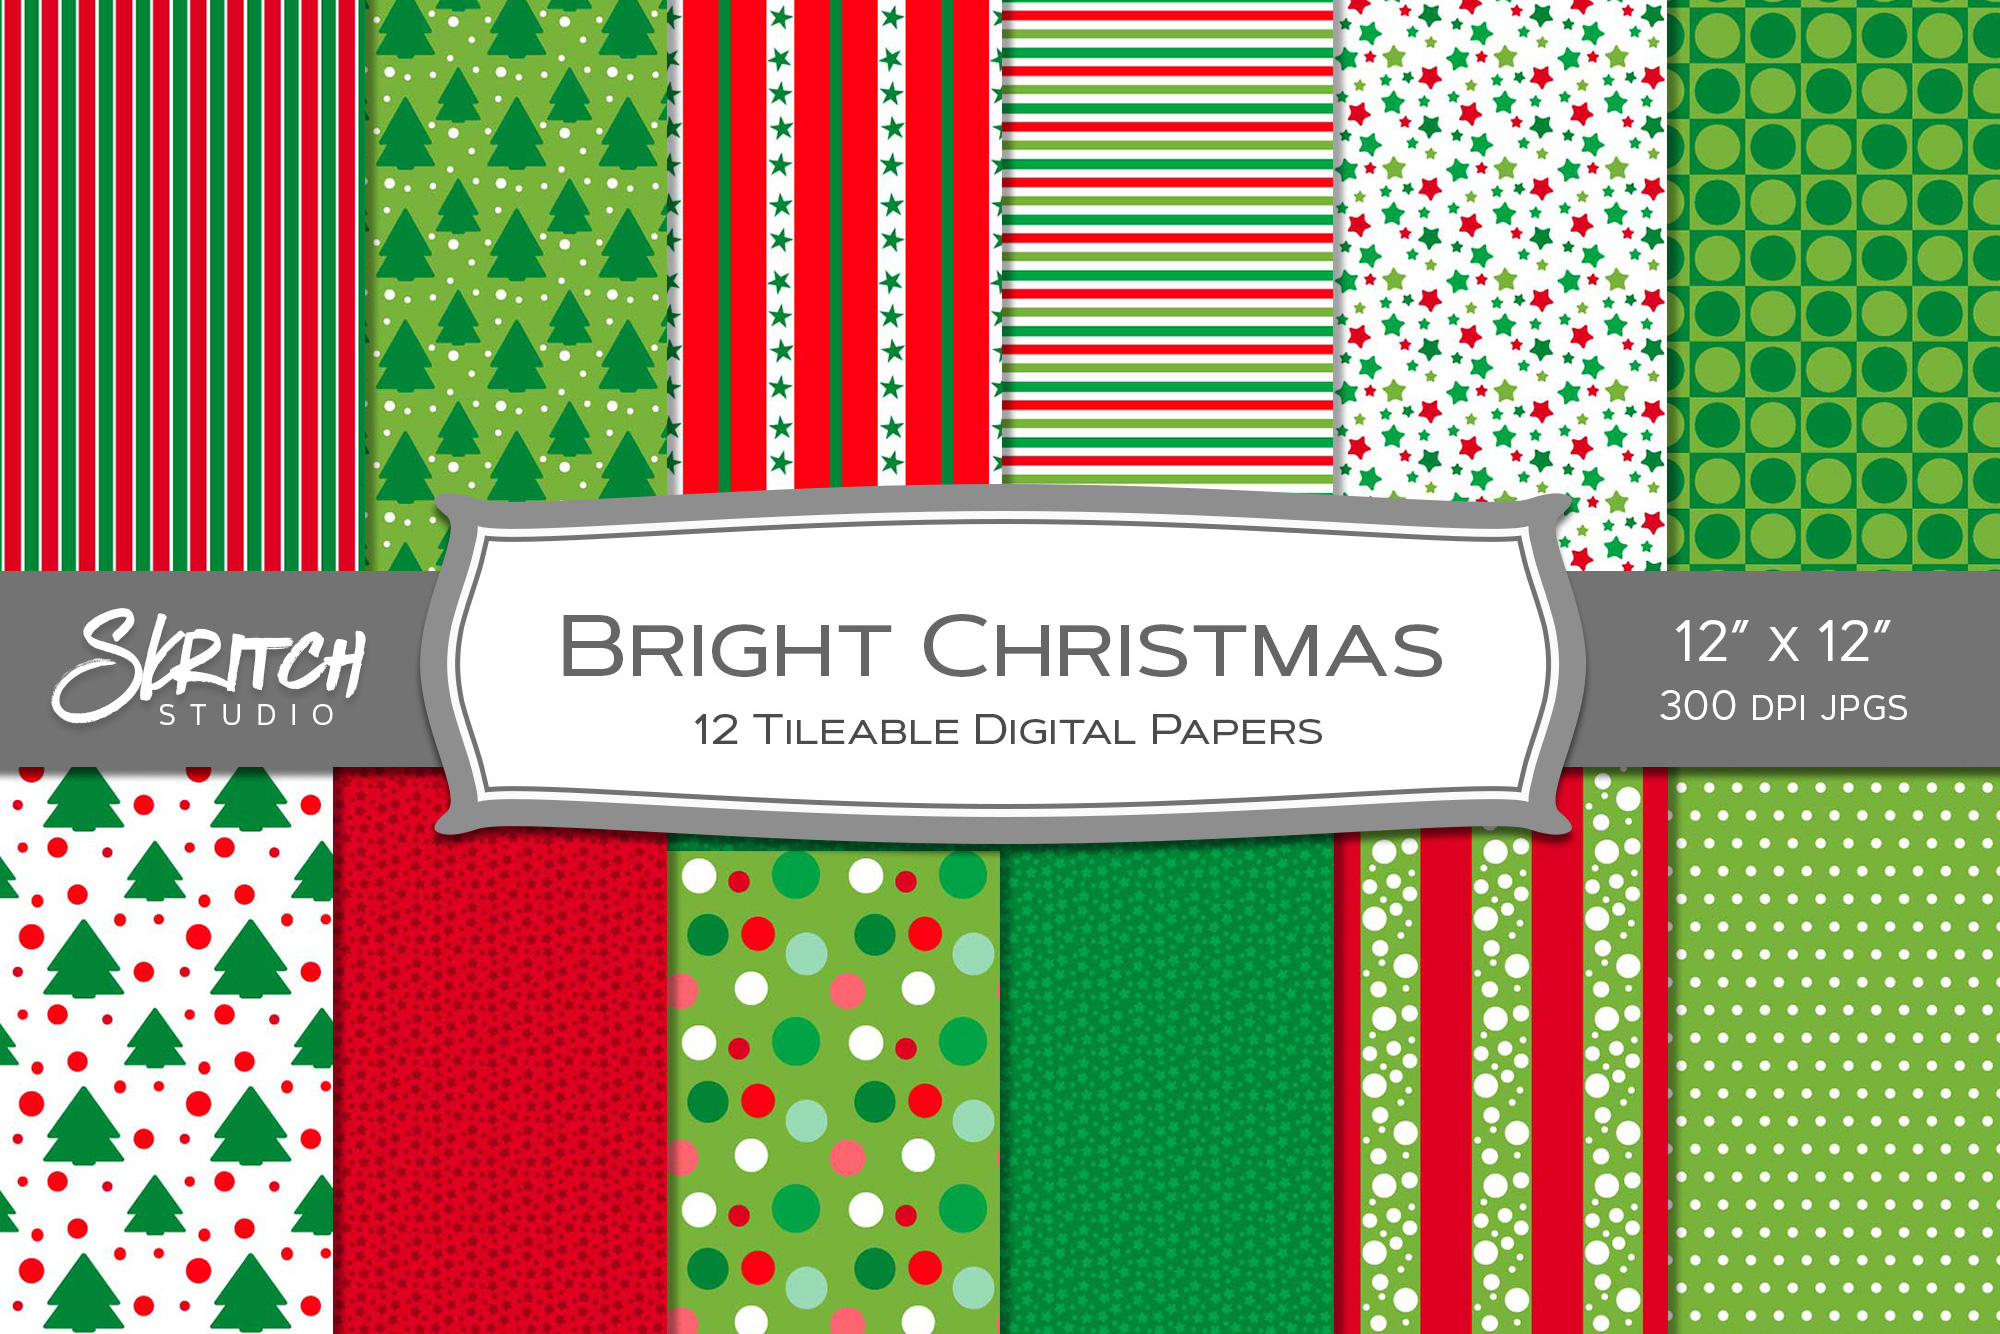 Bright Christmas 12 Tileable Digital Papers example image 1